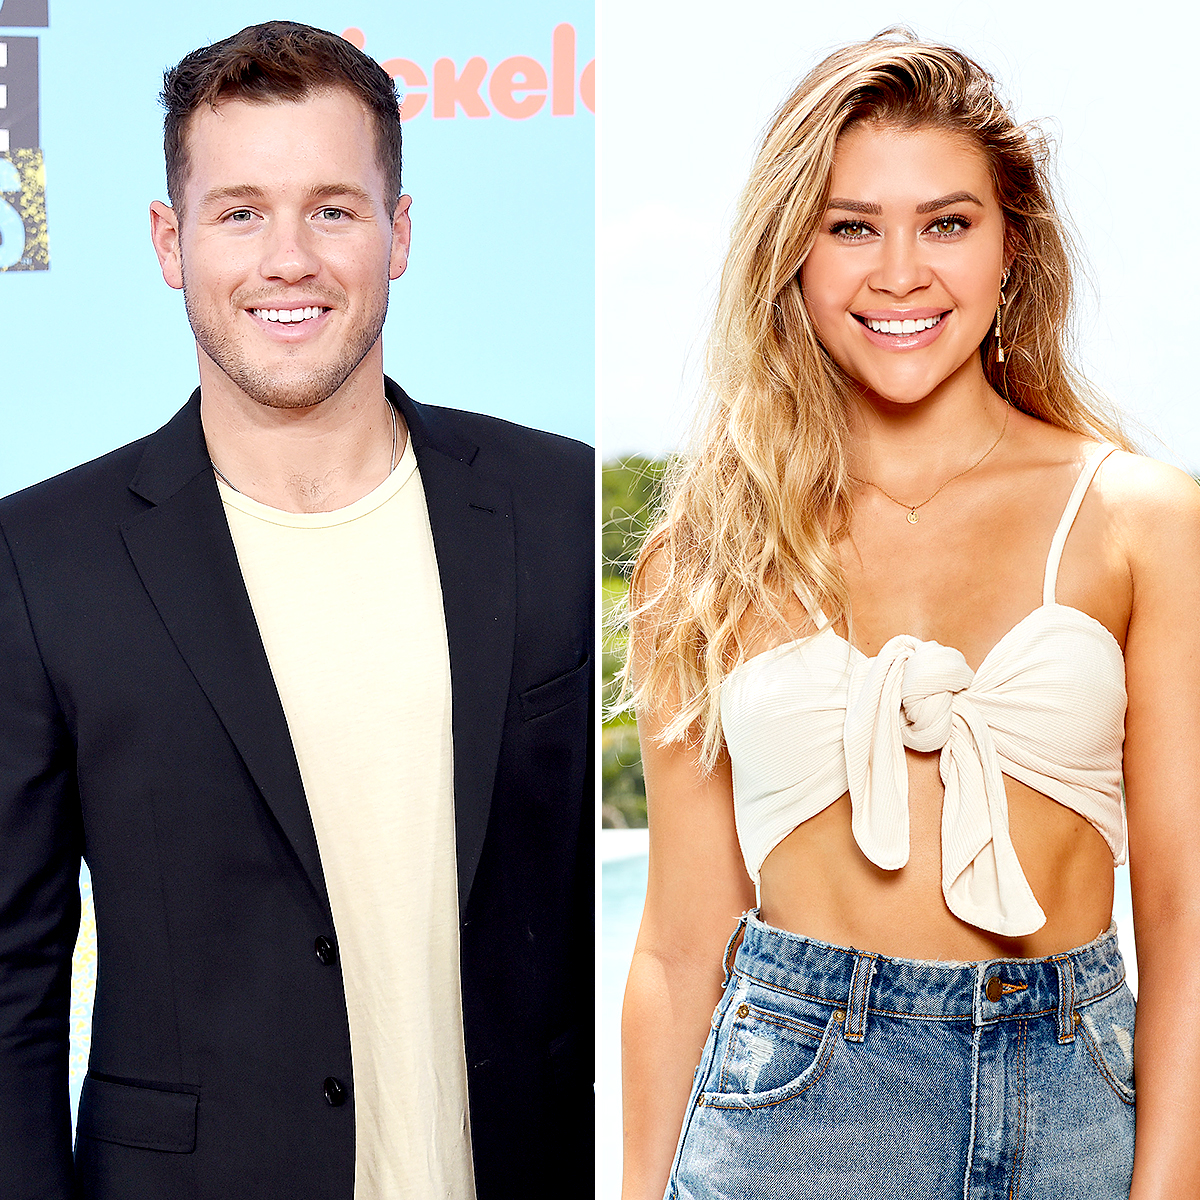 Colton-Underwood-Says-Caelynn-Miller-happy-BIP